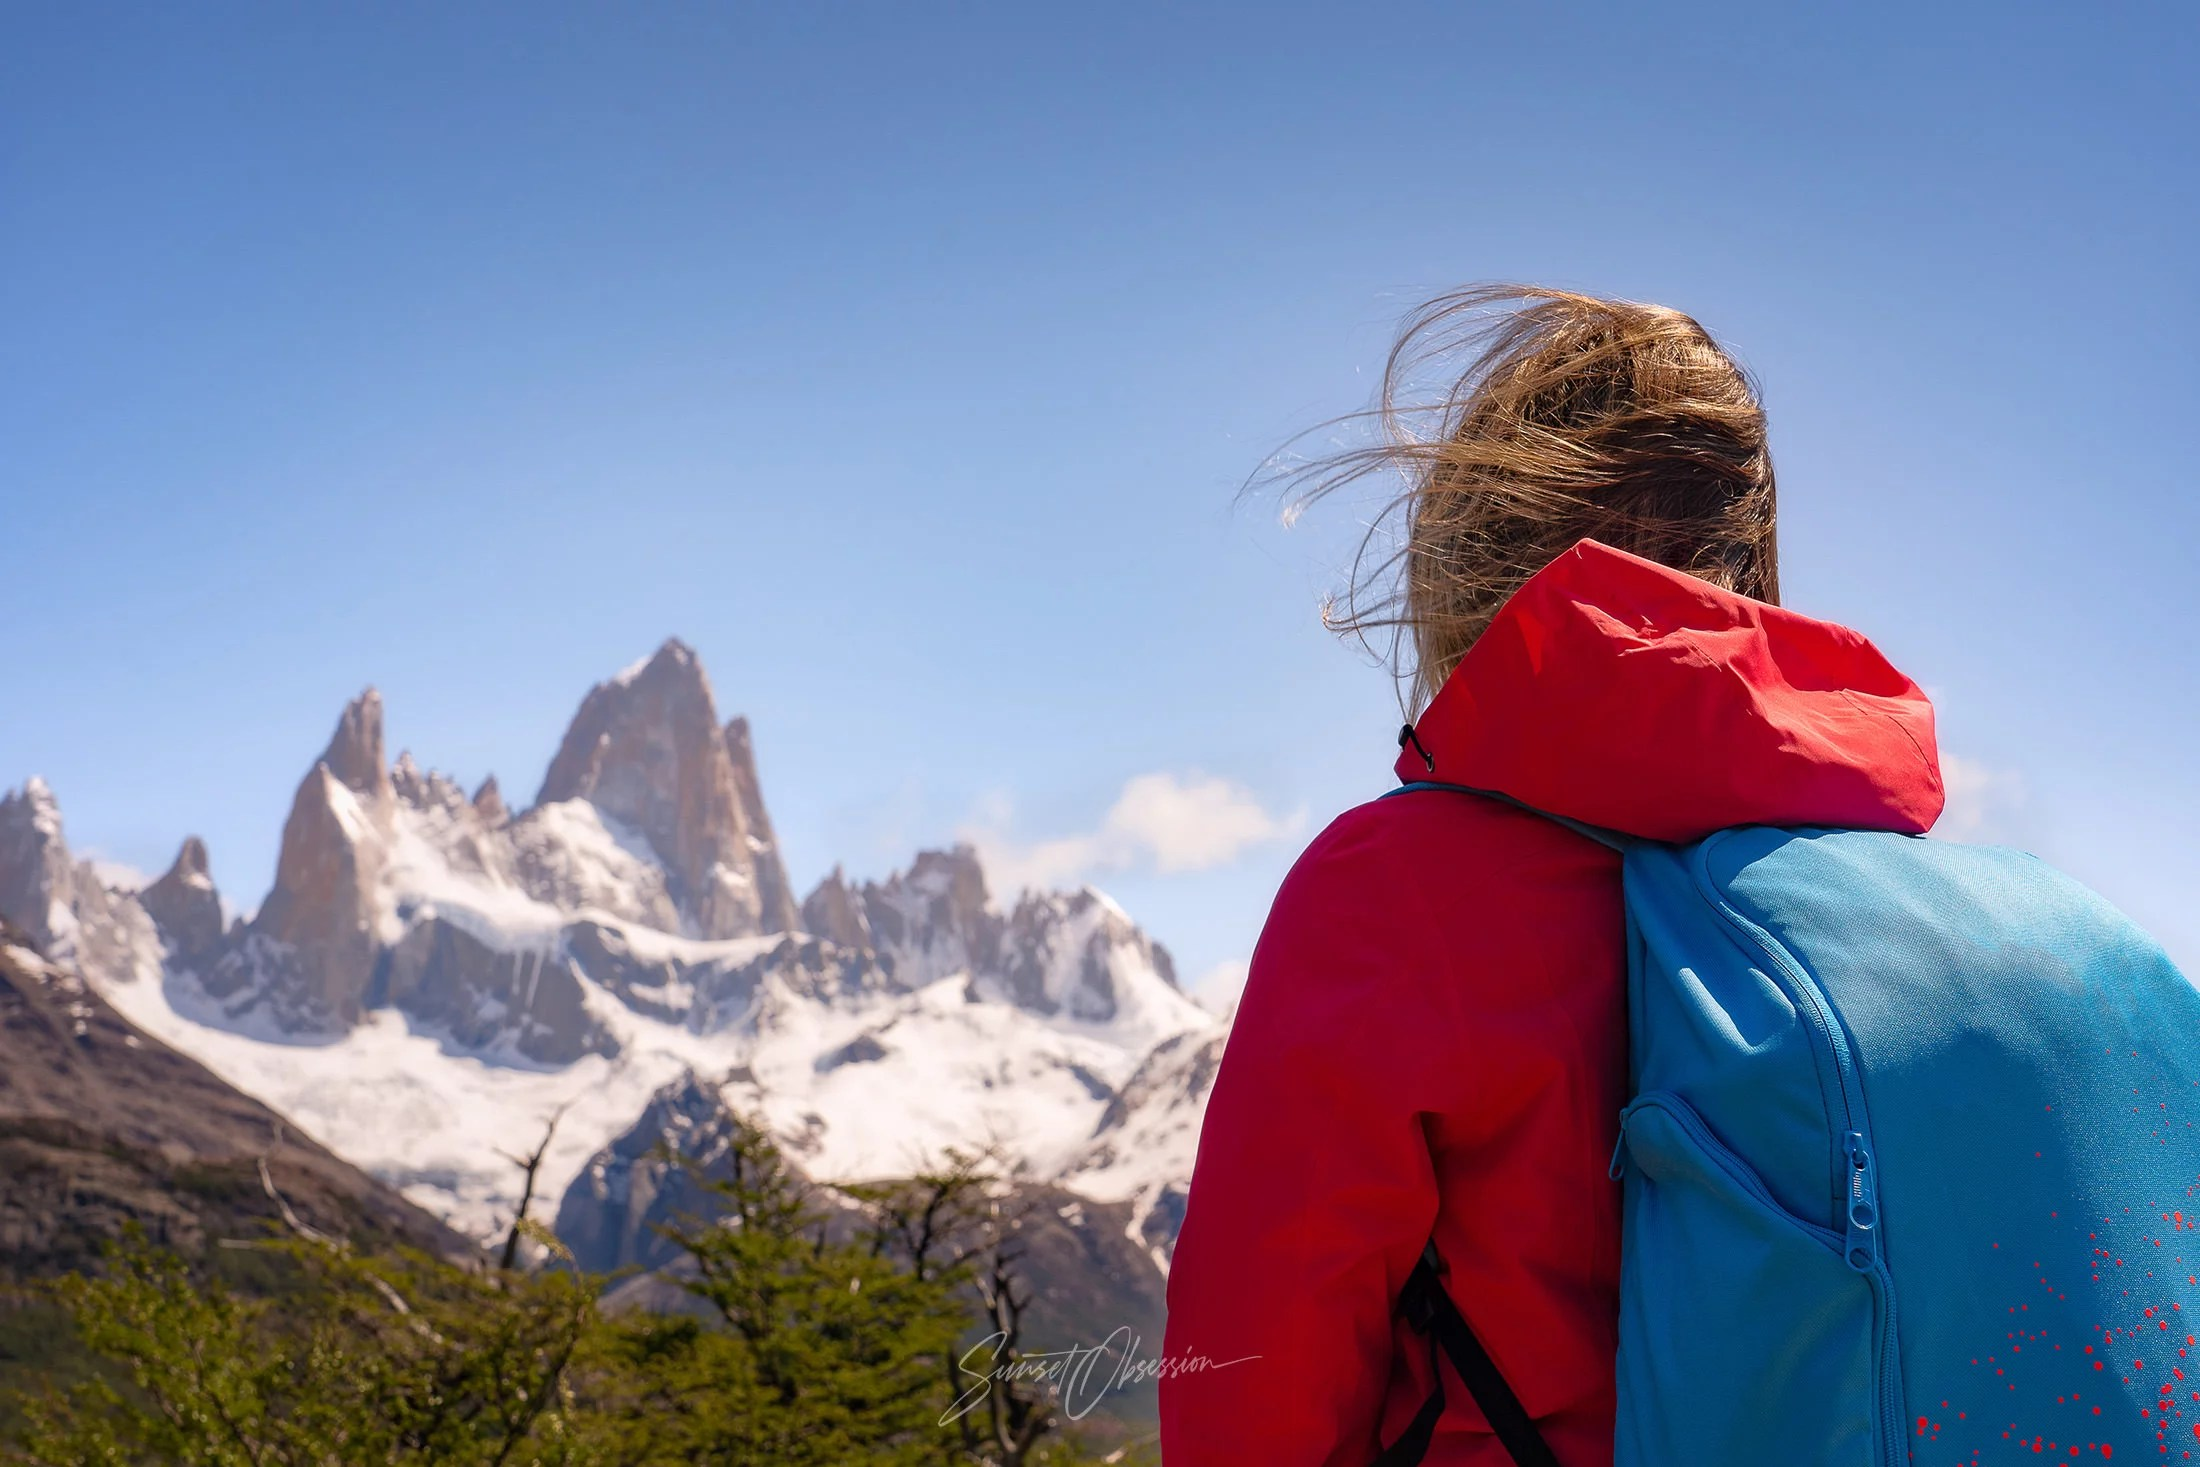 Fitz Roy is one of most known landscape photography locations in Patagonia